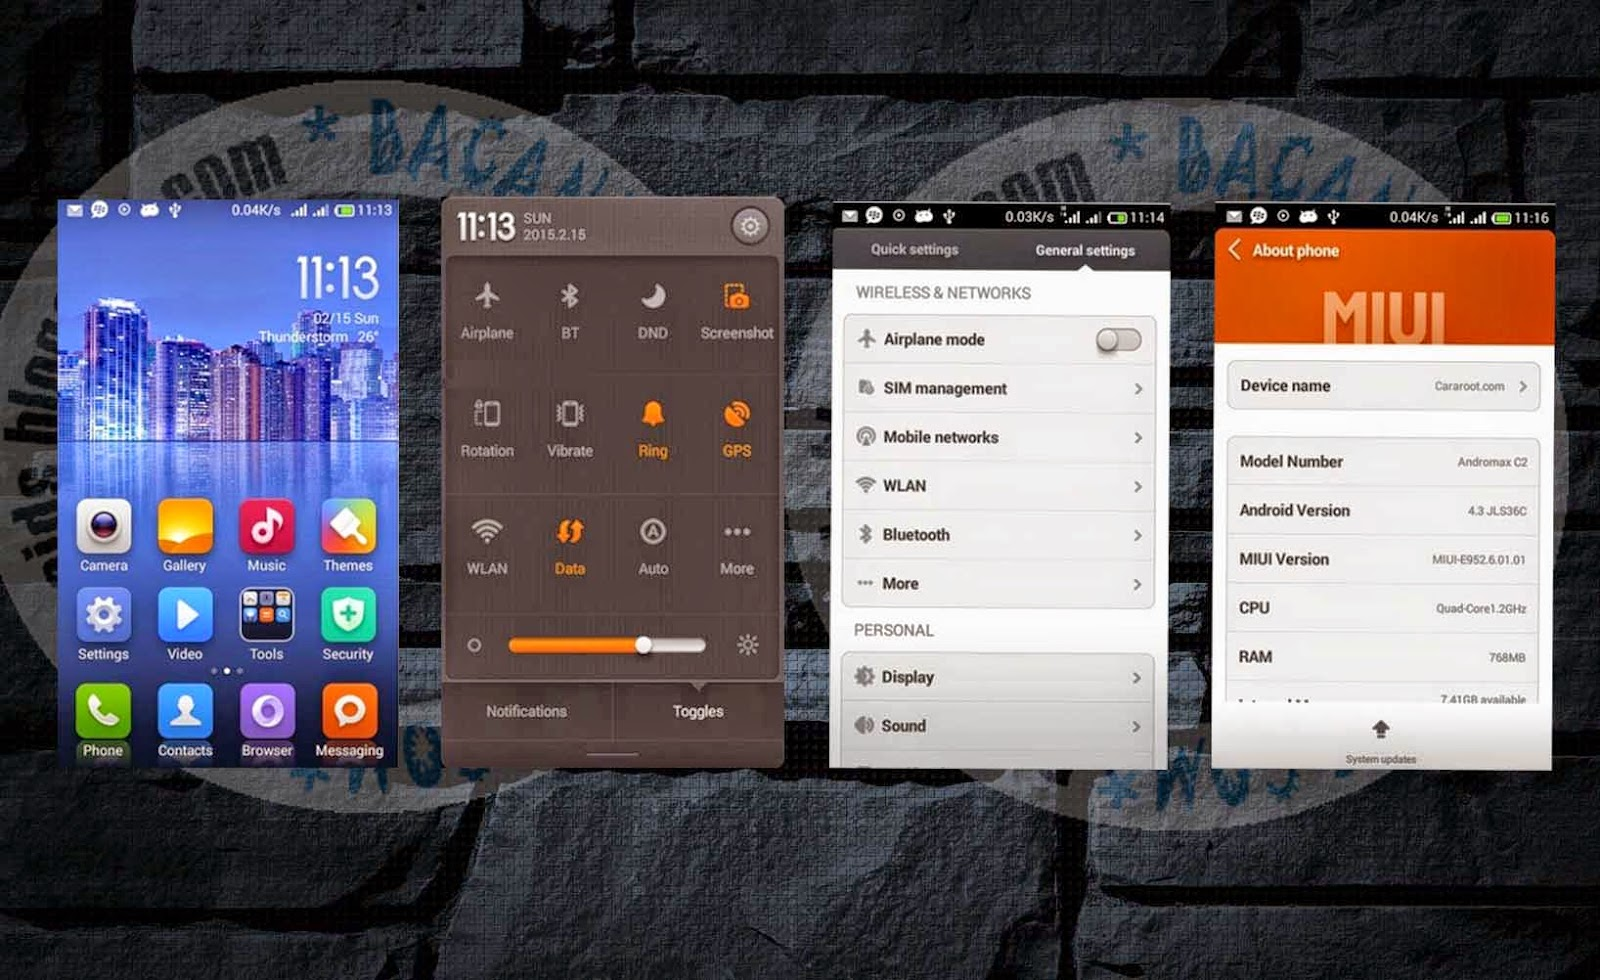 ROM MIUI V5  For Andromax C2(Fix Bug)